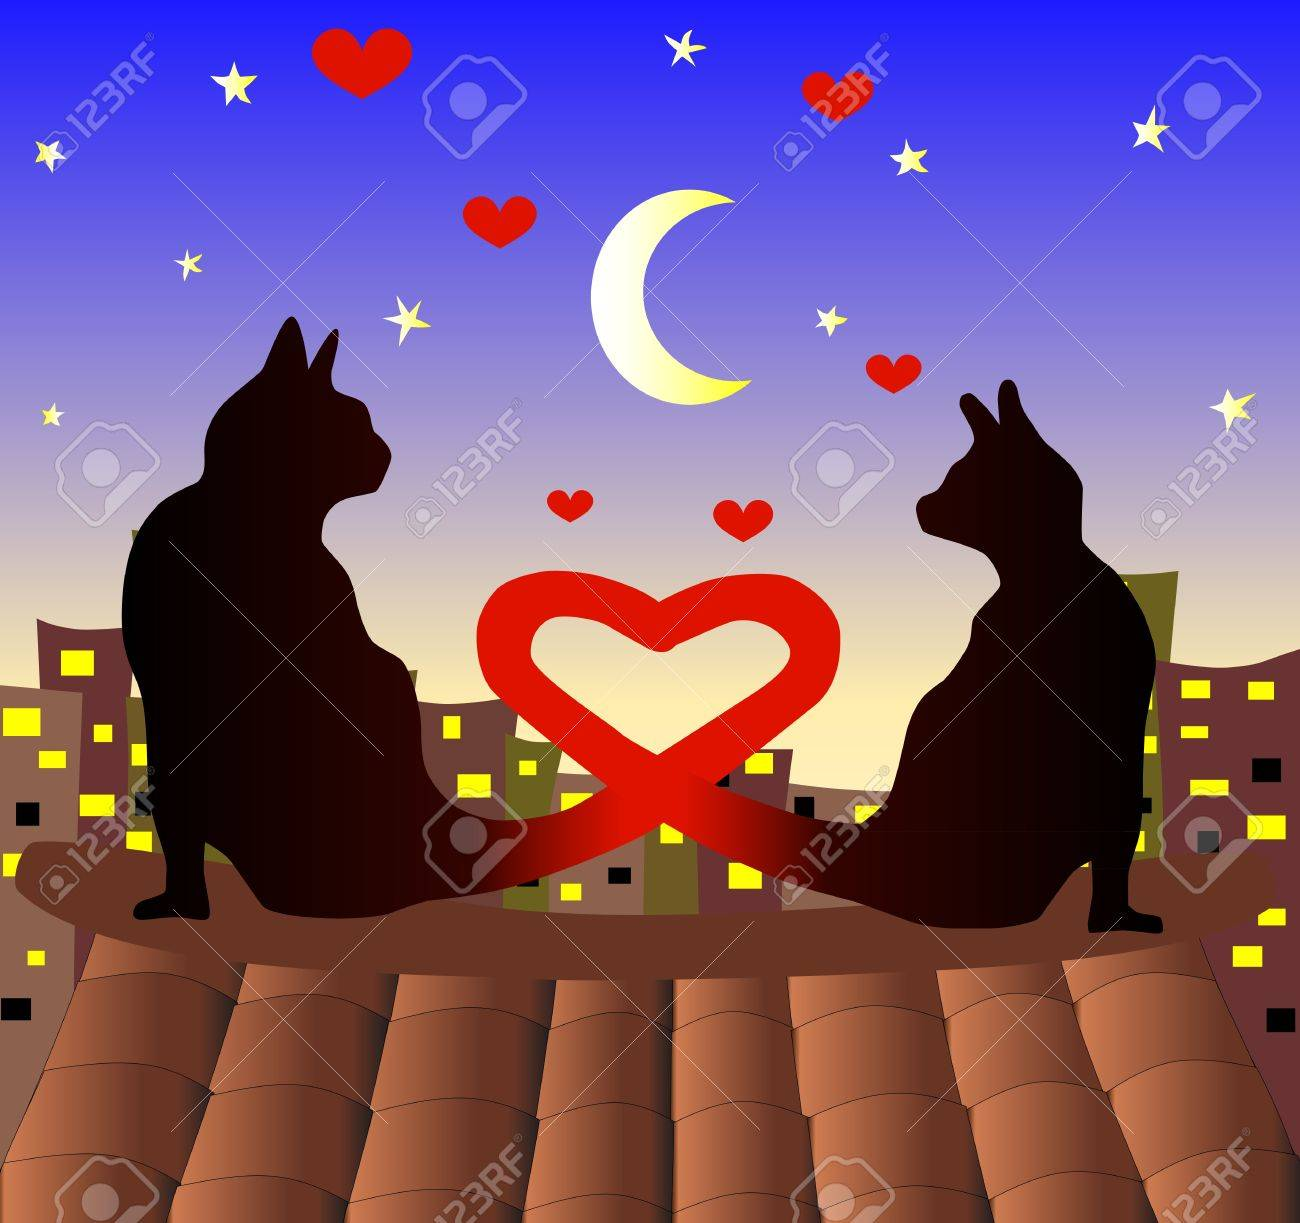 Couple of cats watching eatch other. Love cats. Valentines day. Stock Vector - 11956949